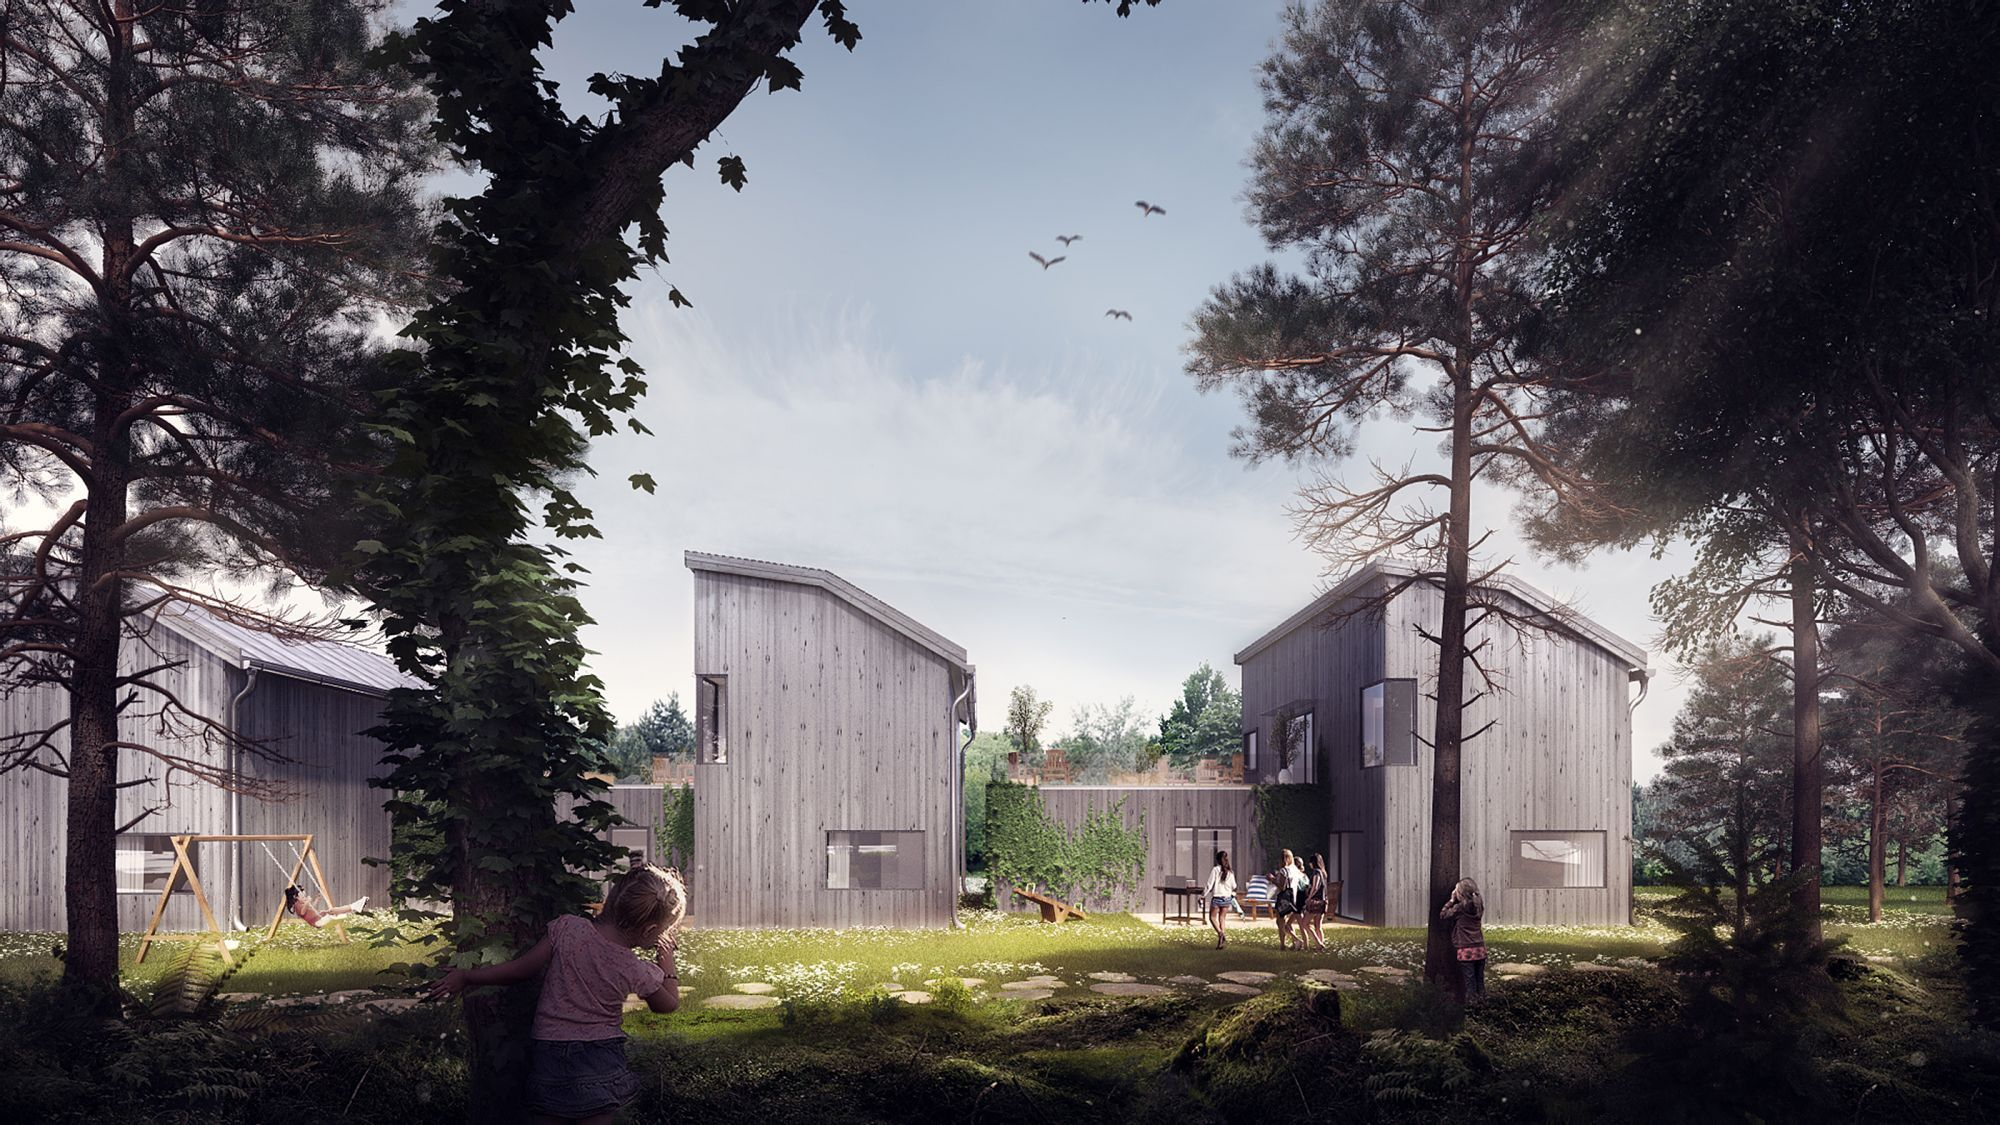 CGarchitect - Professional 3D Architectural Visualization User Community | Tyttebaerstien, Norway